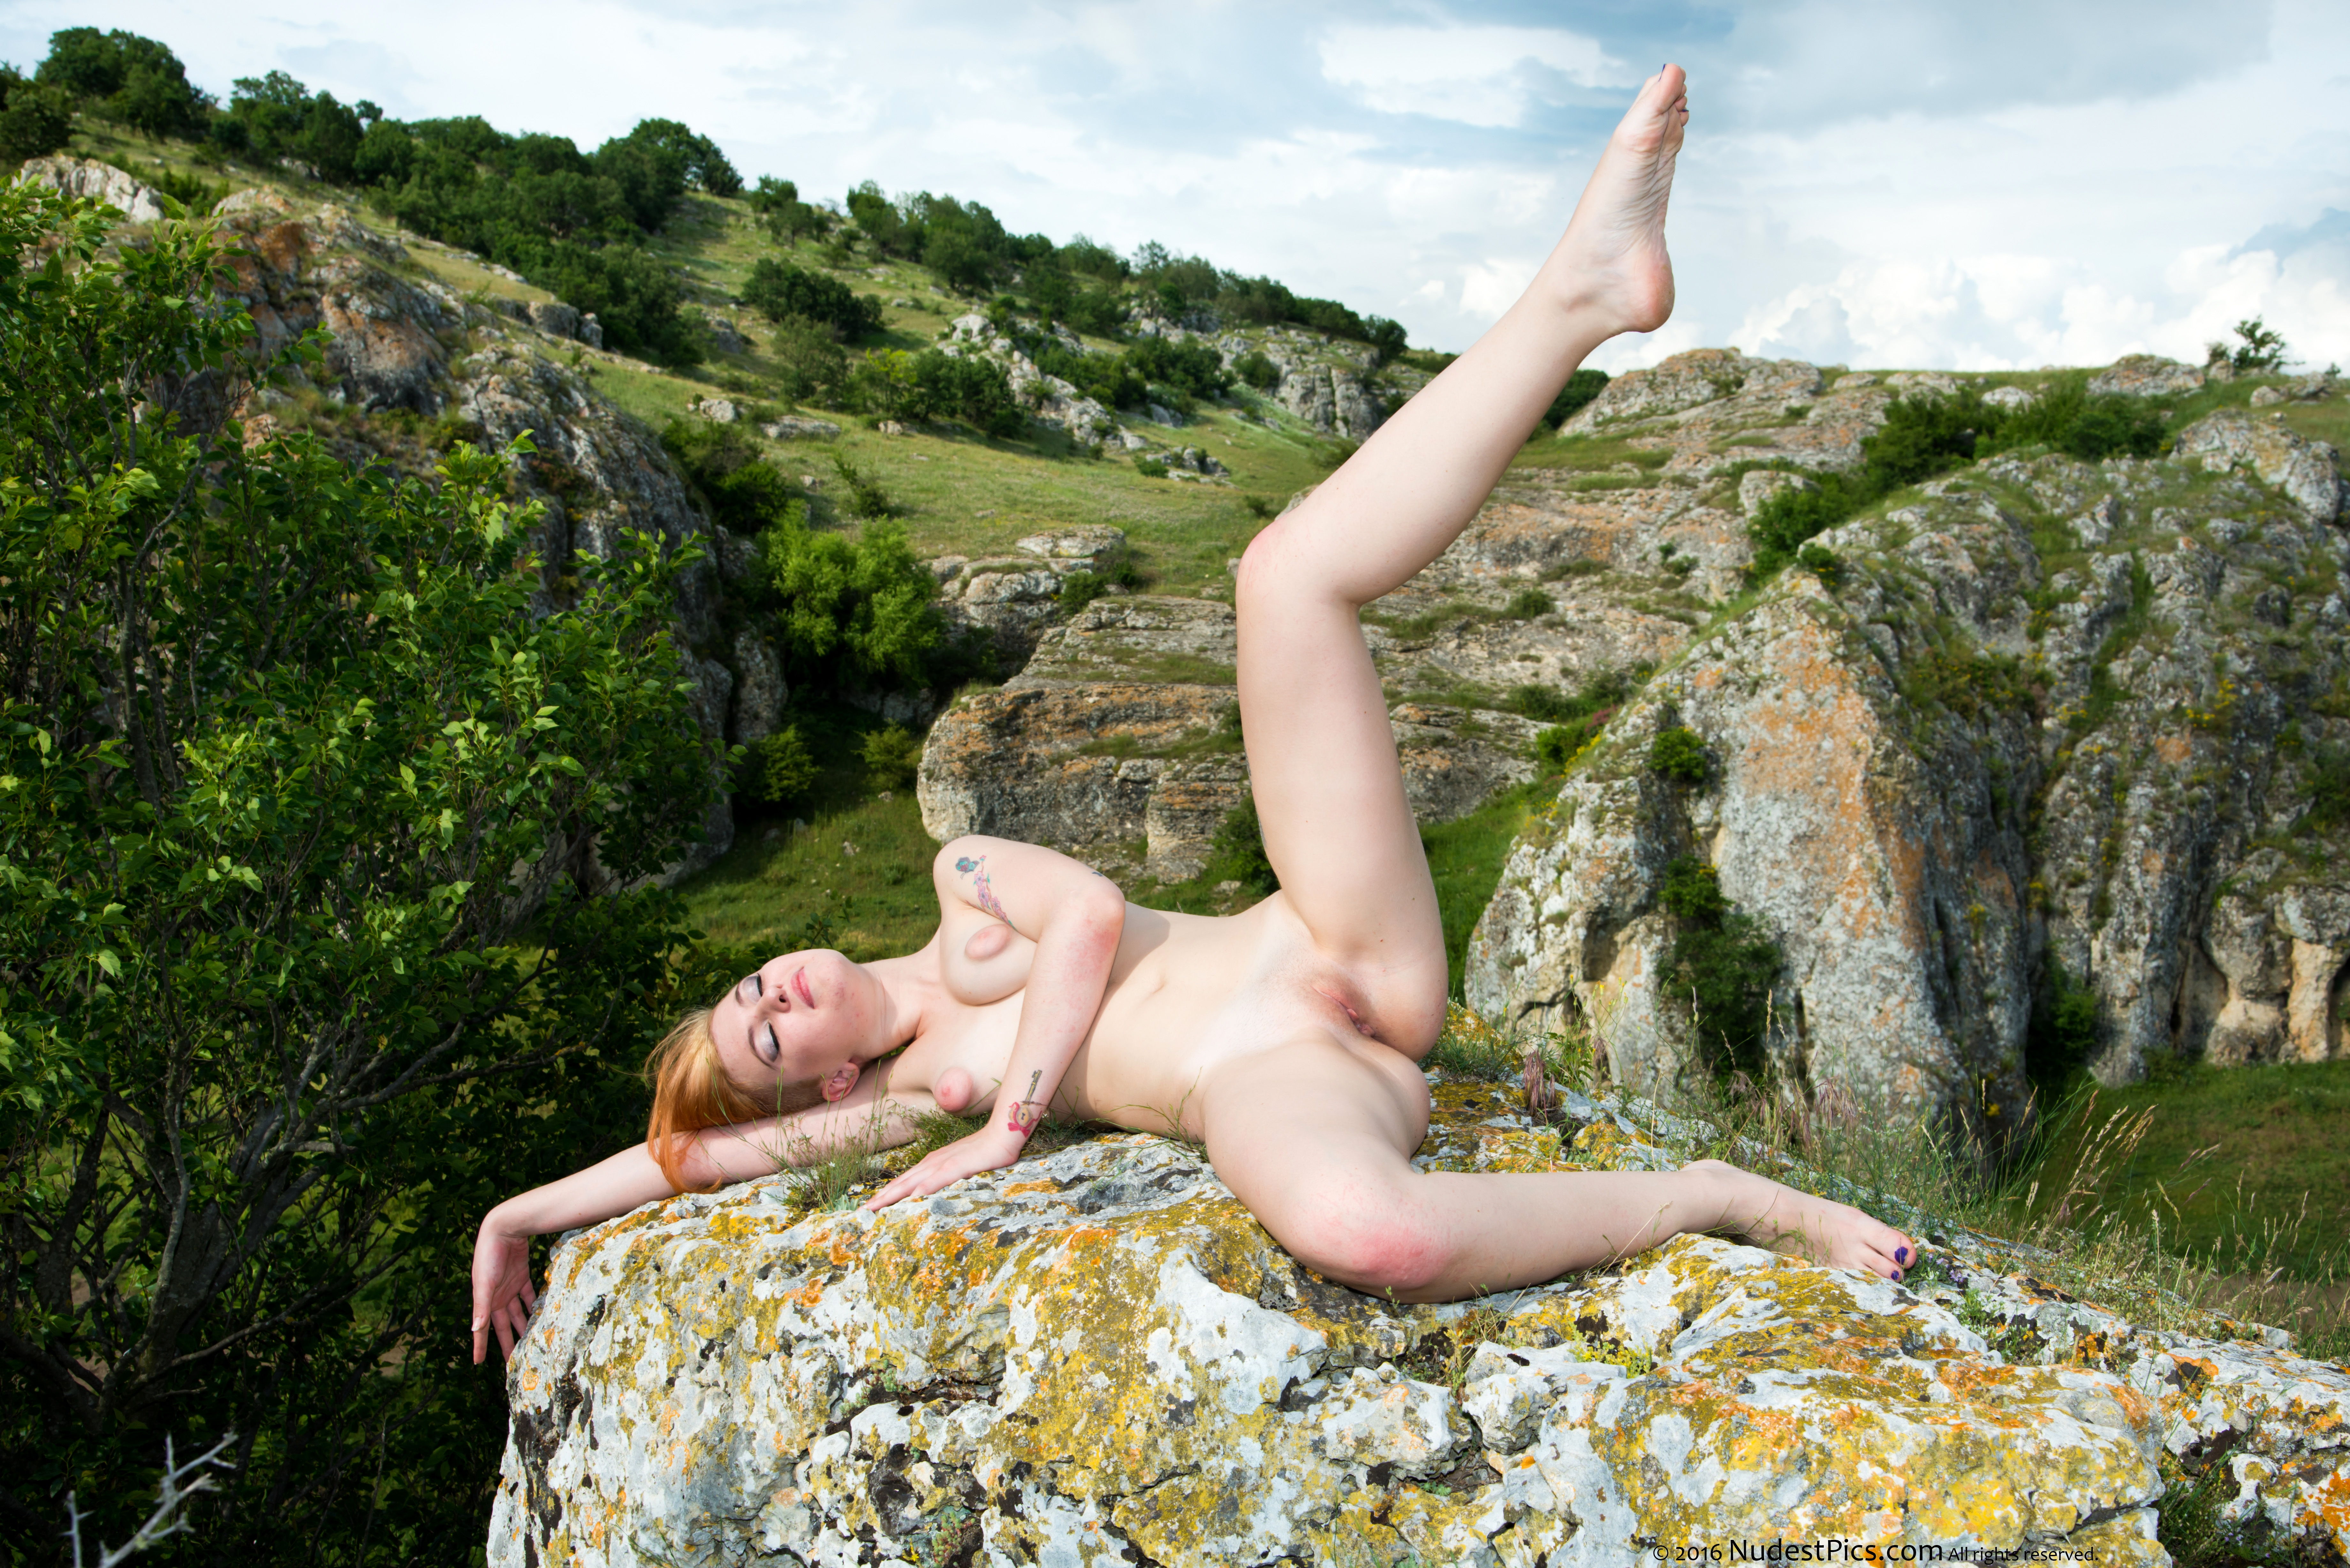 Naked Yoga Girl Legs open of a Cliff HD